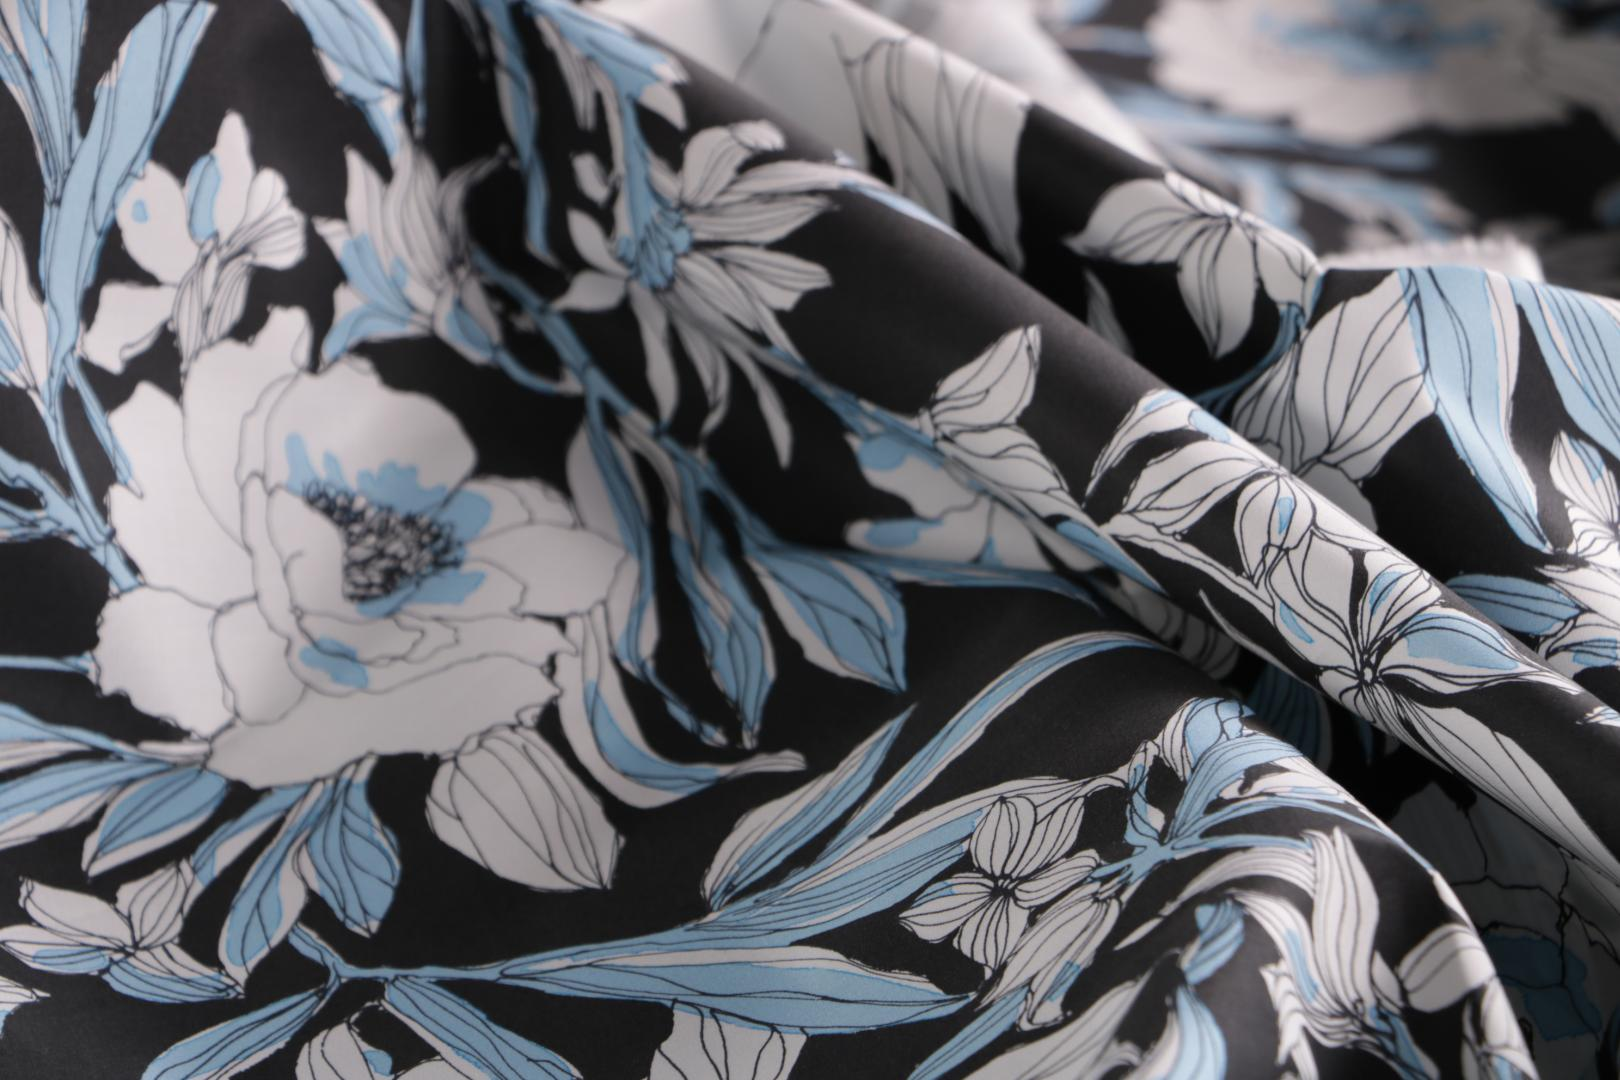 Floral cotton canvas fabric printed on black background | new tess